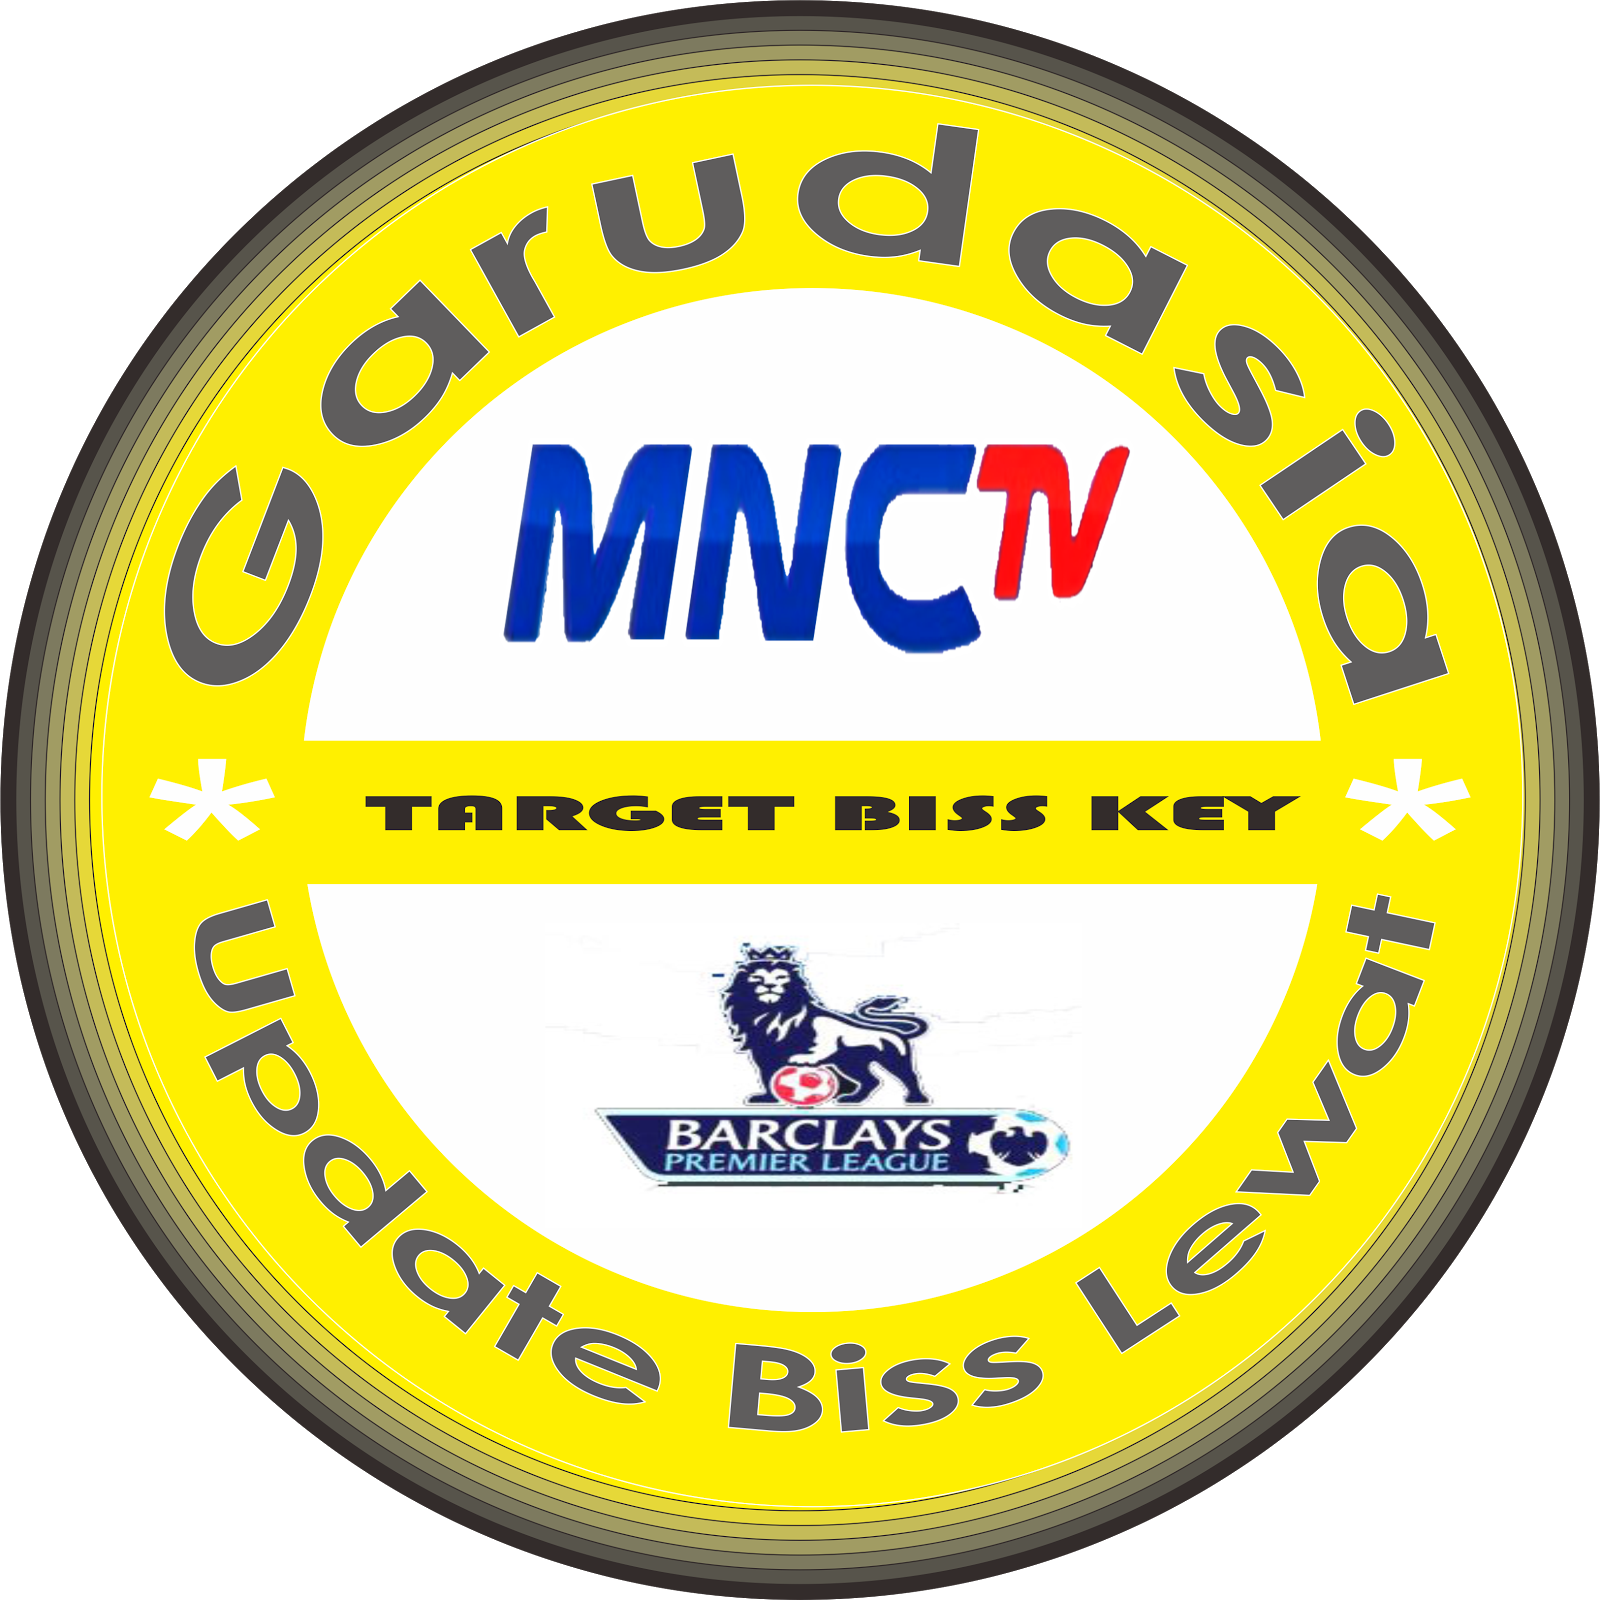 Biss Key MNC TV , Sunderland vs Everton